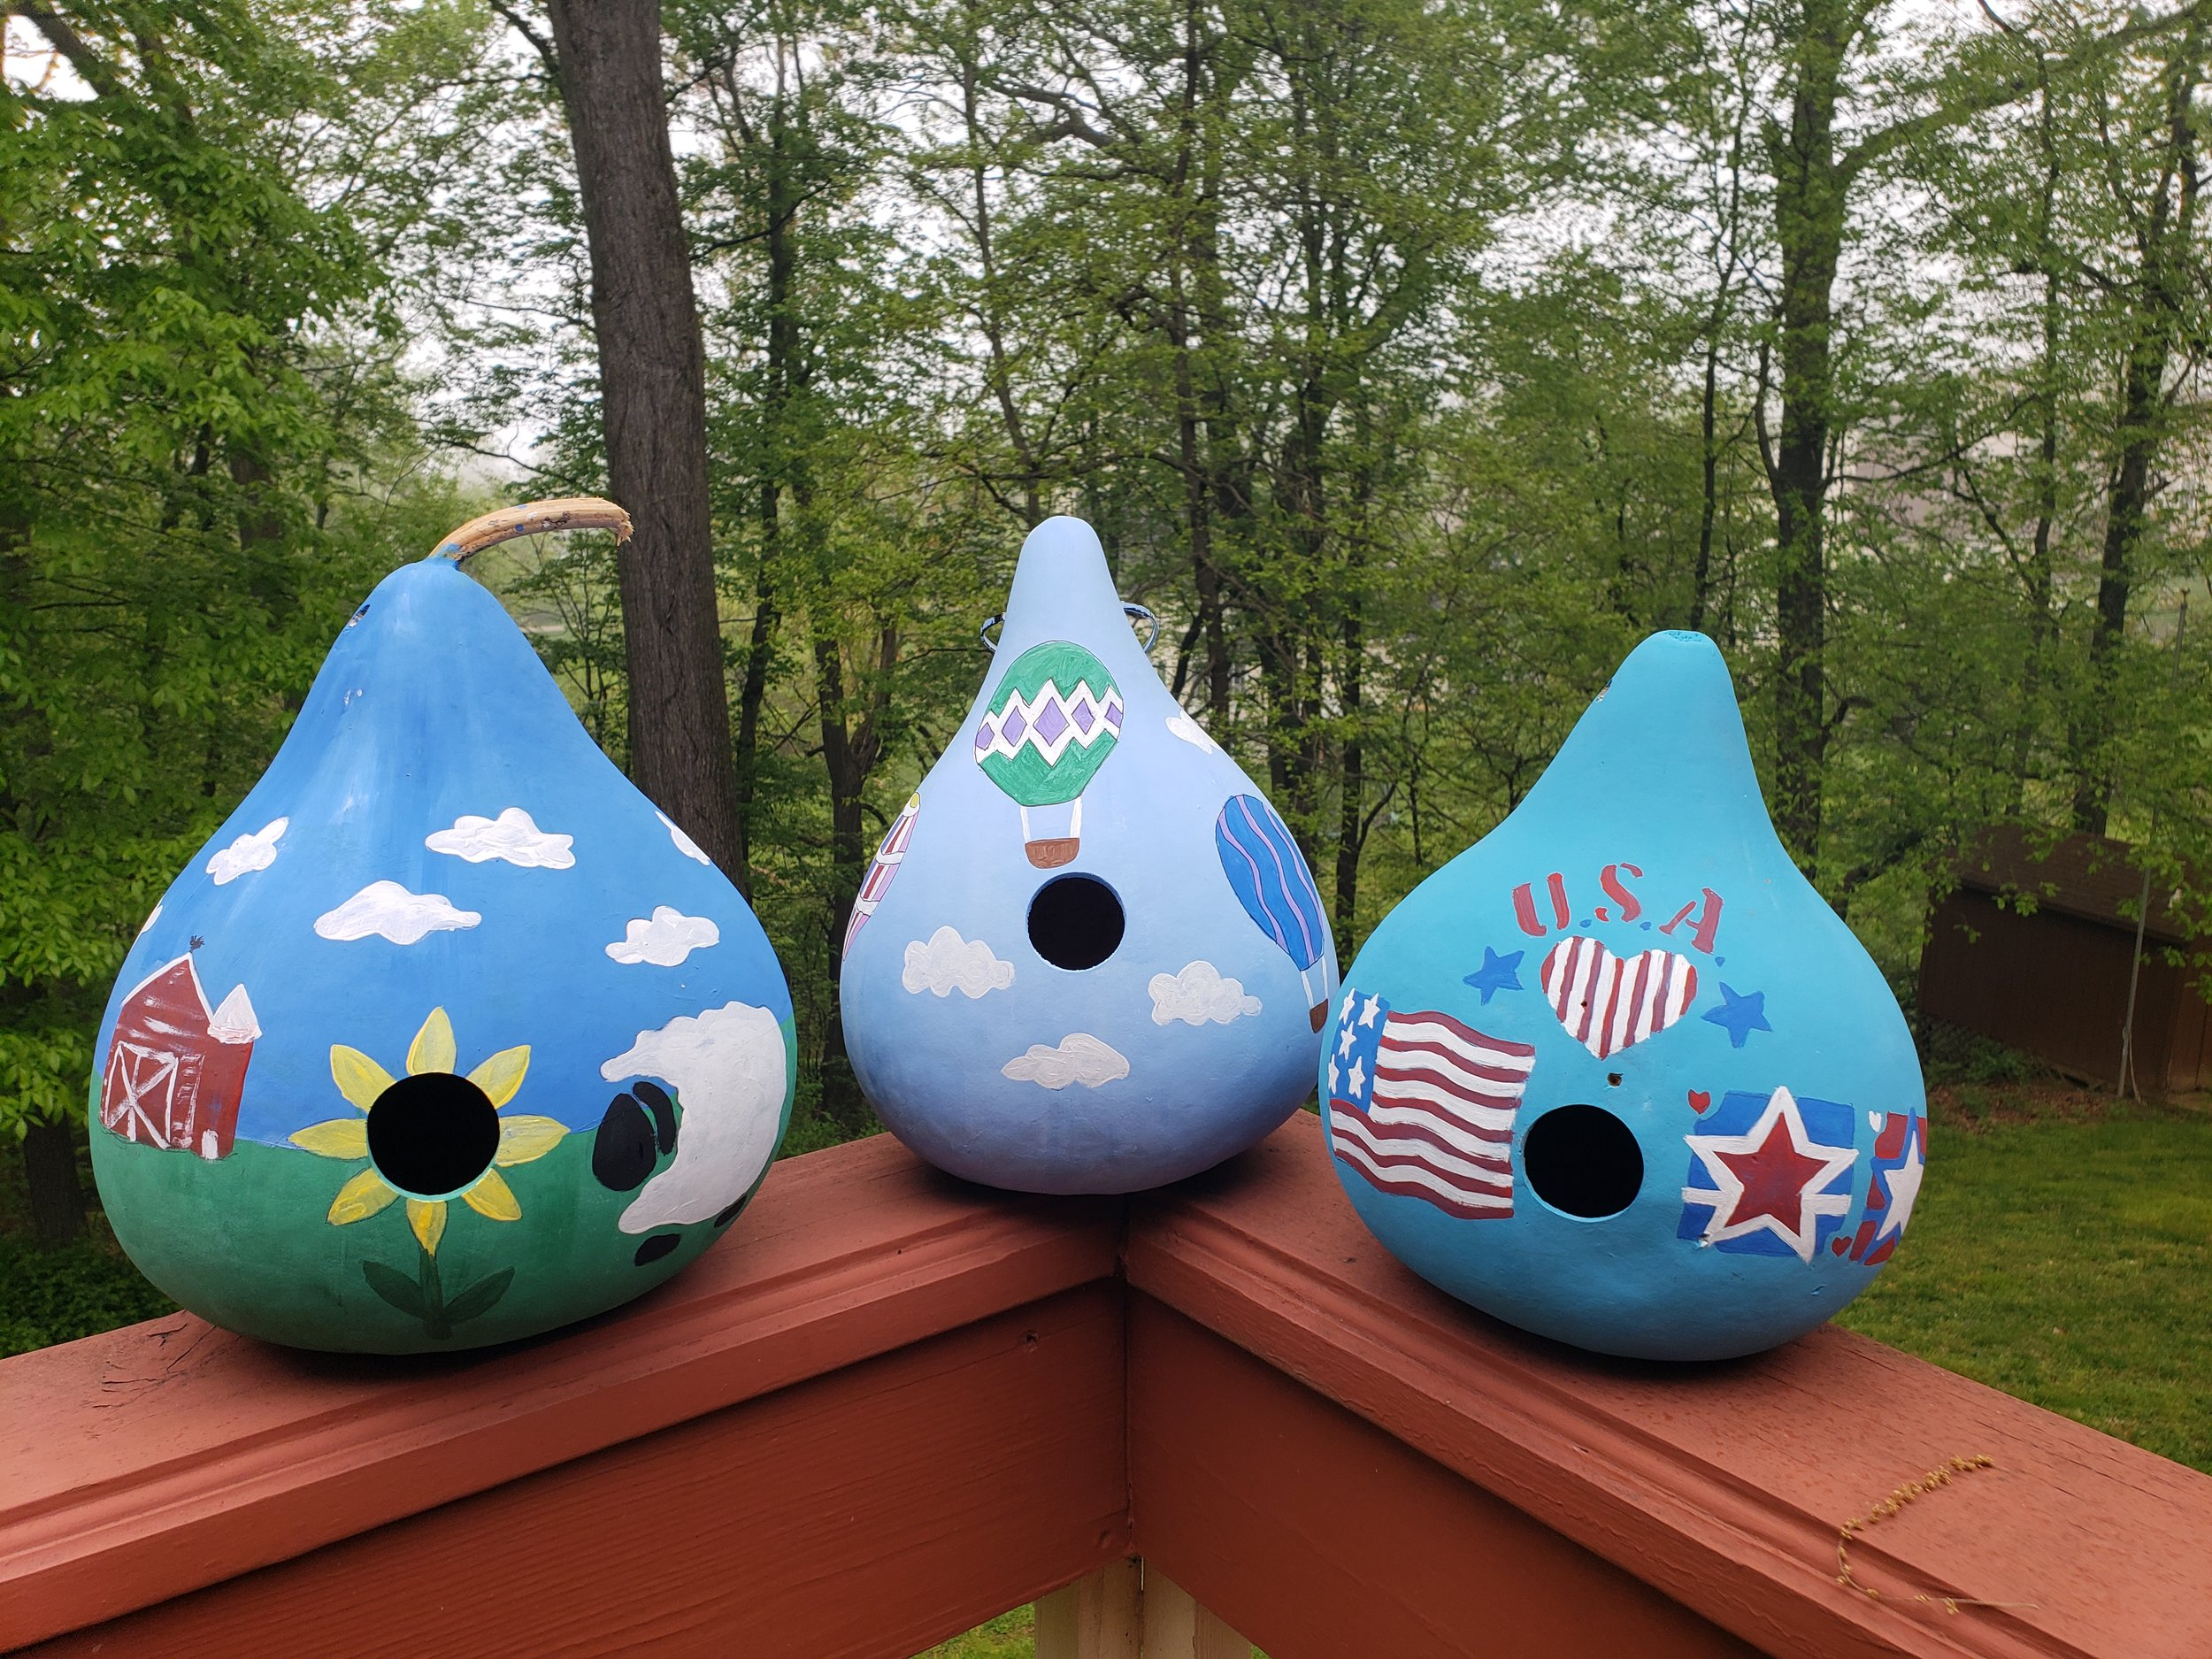 Acrylic Bird House Class is a 2 hour class for $35 - Come paint your very own Gourd Bird House!! Here are three of the stencil designs to choose from, there are many other stencil available or you can free hand any design you like. This is an all ages classes.Level: Beginner & ALL Skill Levels